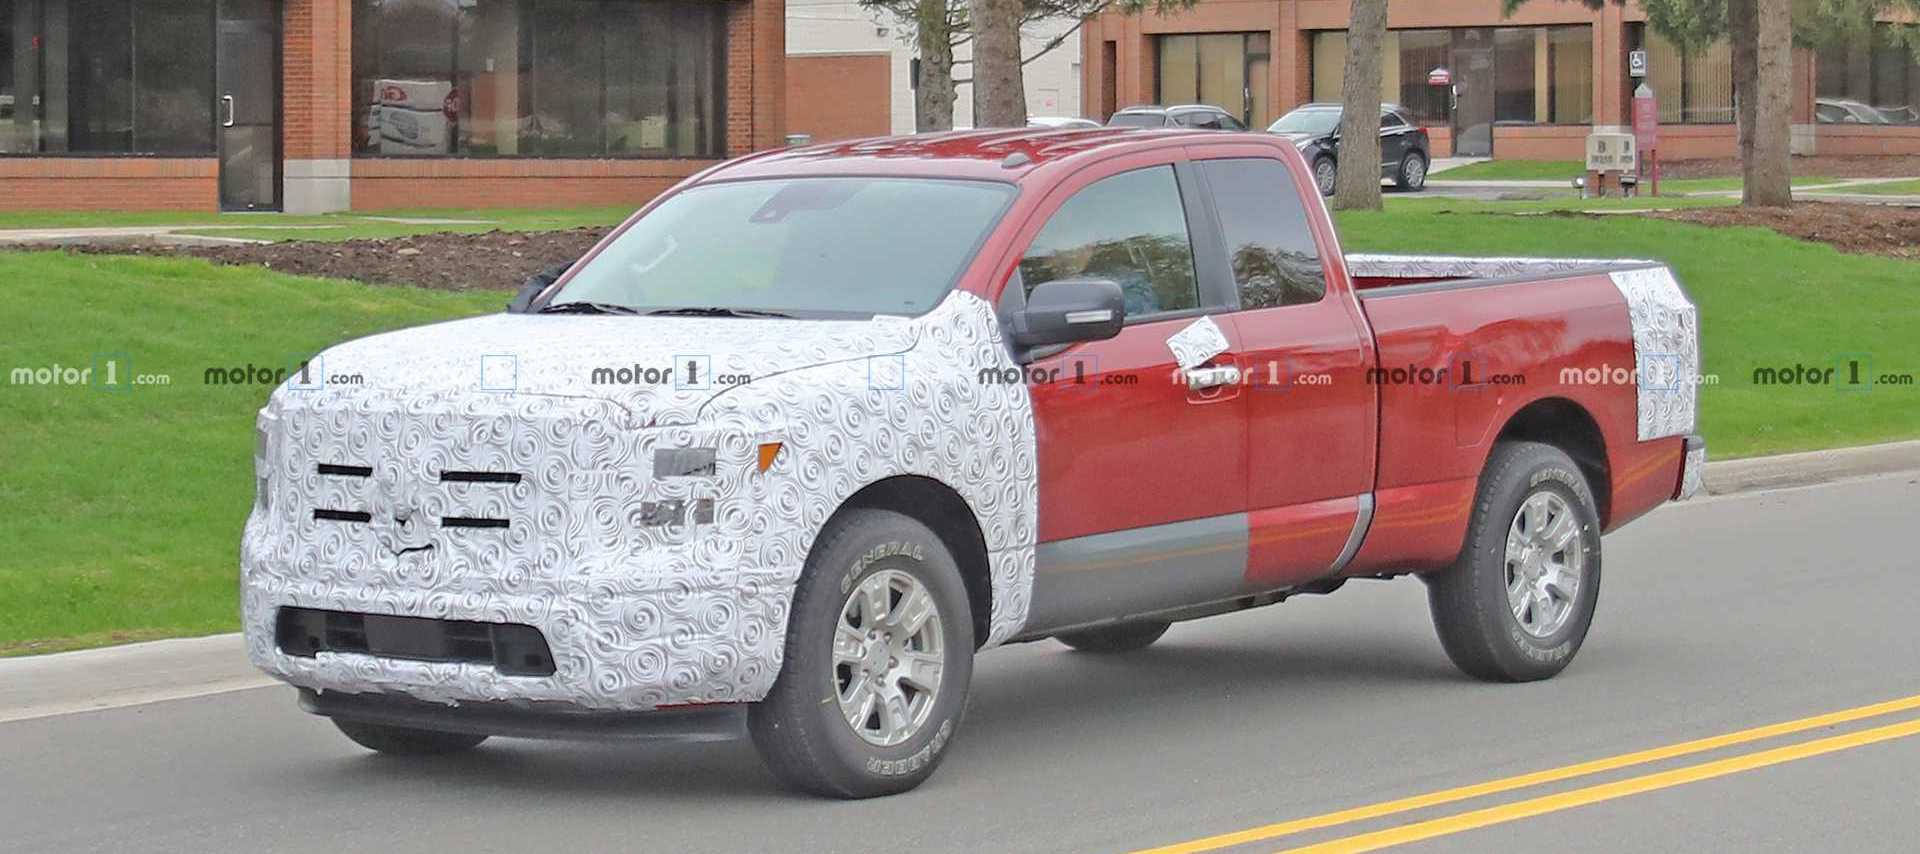 Nissan Titan Facelift Spied For First Time Disguised As An F-150